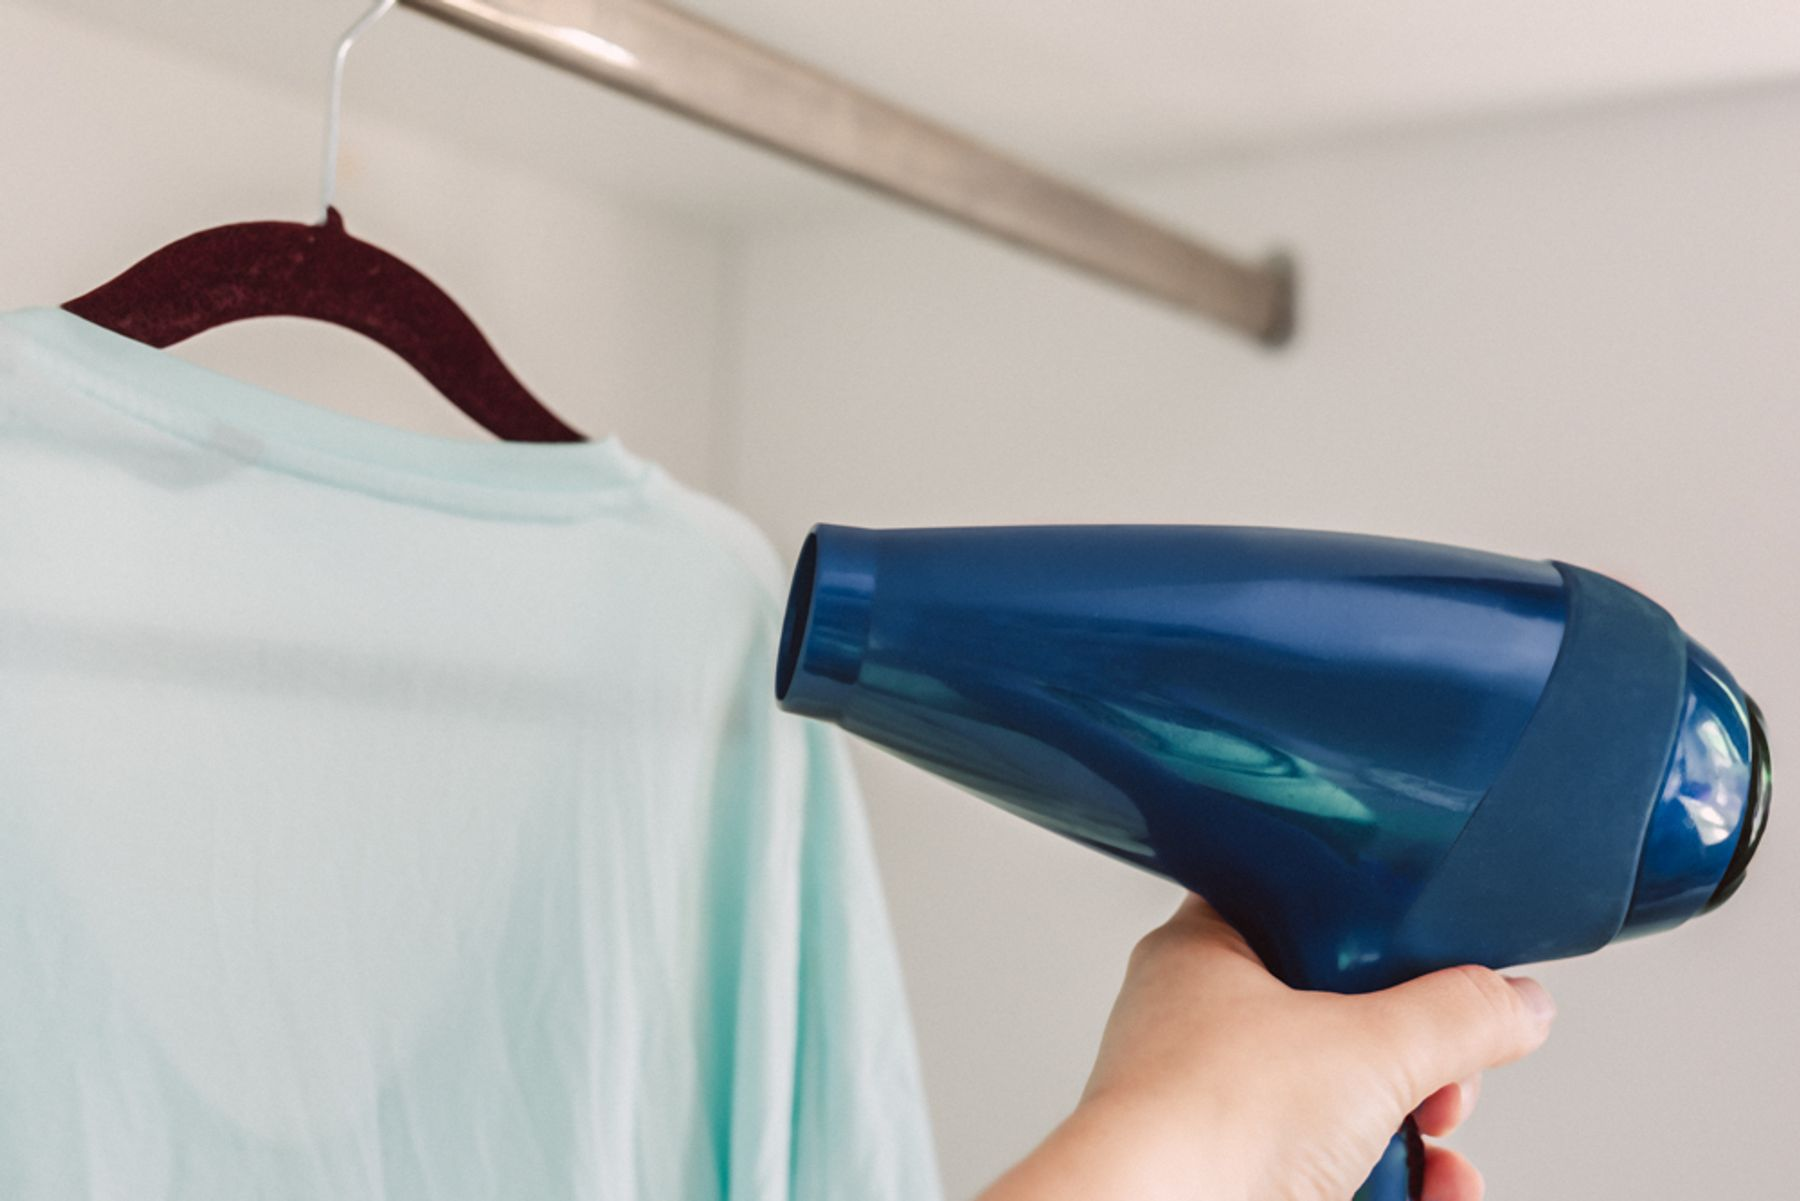 Using a hairdryer to dry a top hanging on a hanger